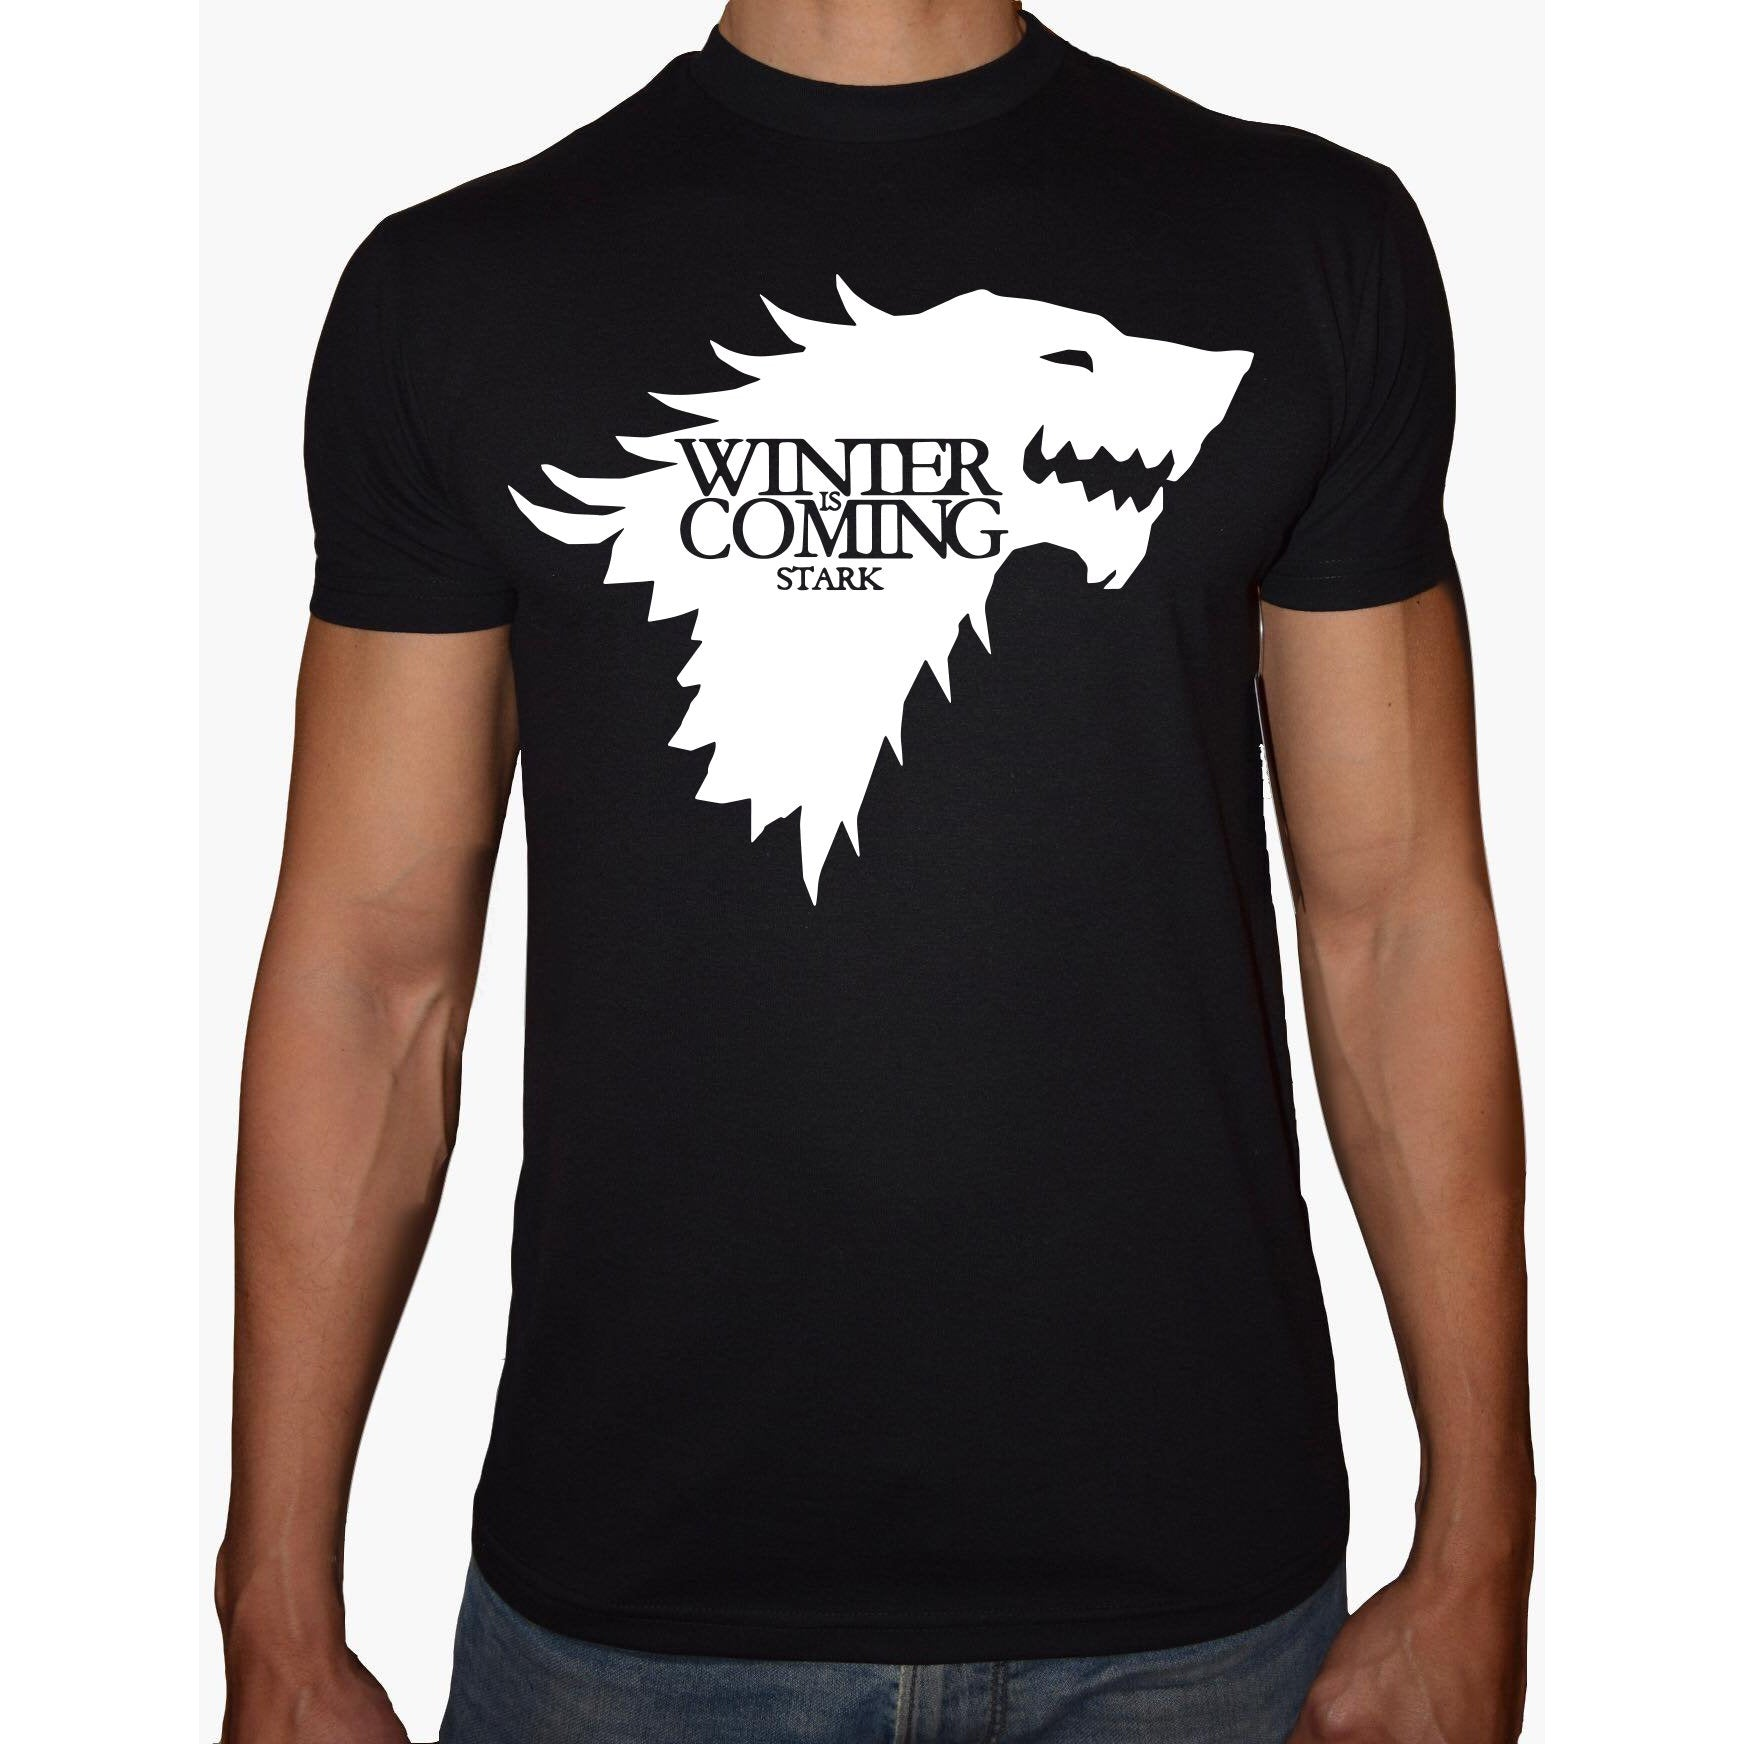 Phoenix BLACK Round Neck Printed T-Shirt Men (Game of thrones - Winter is coming)